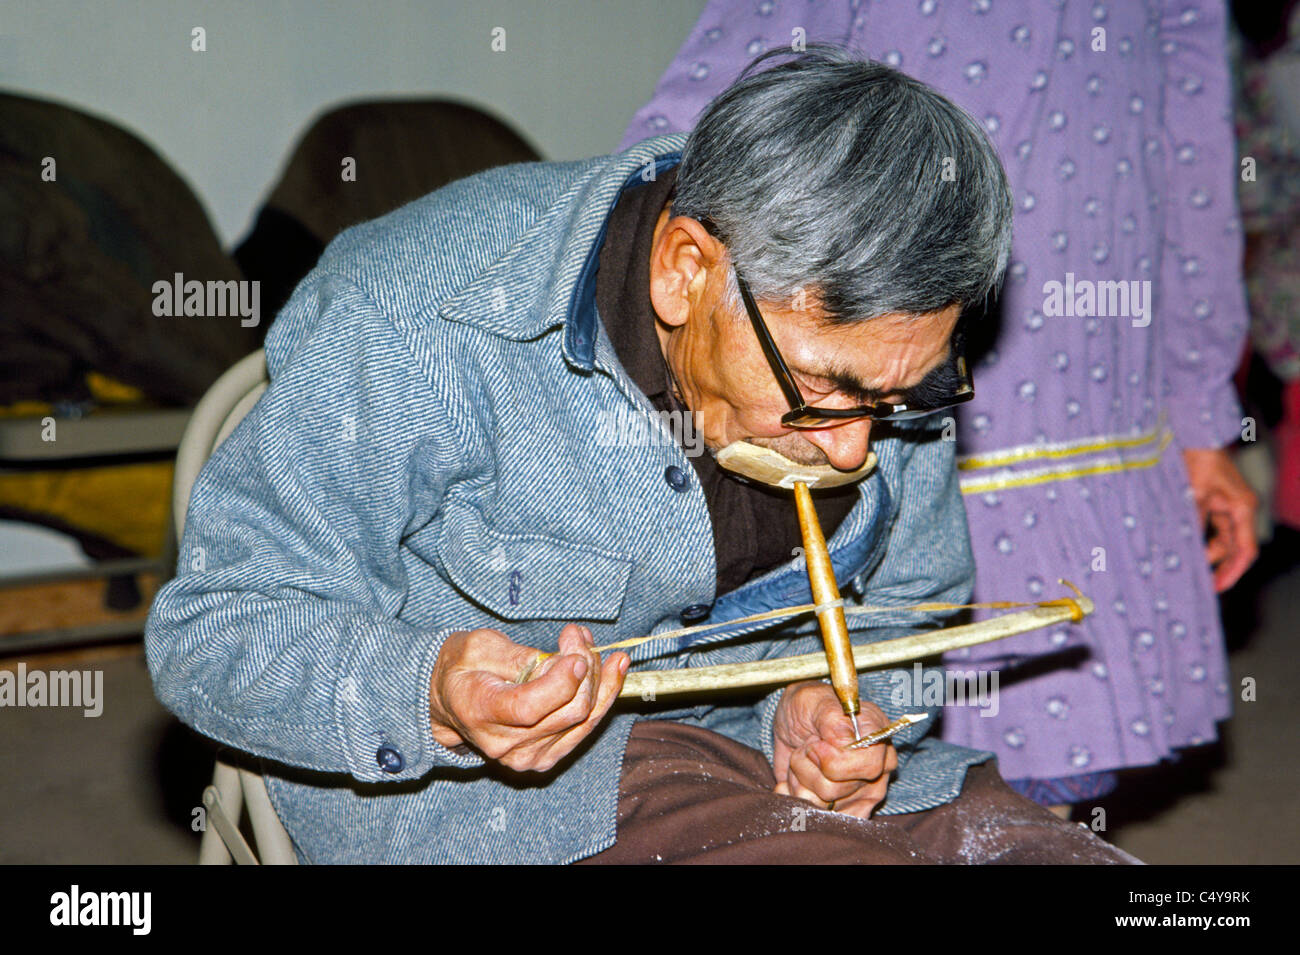 An elderly Eskimo artist demonstrates the use of a native hand tool called a bow drill to make designs in a small - Stock Image